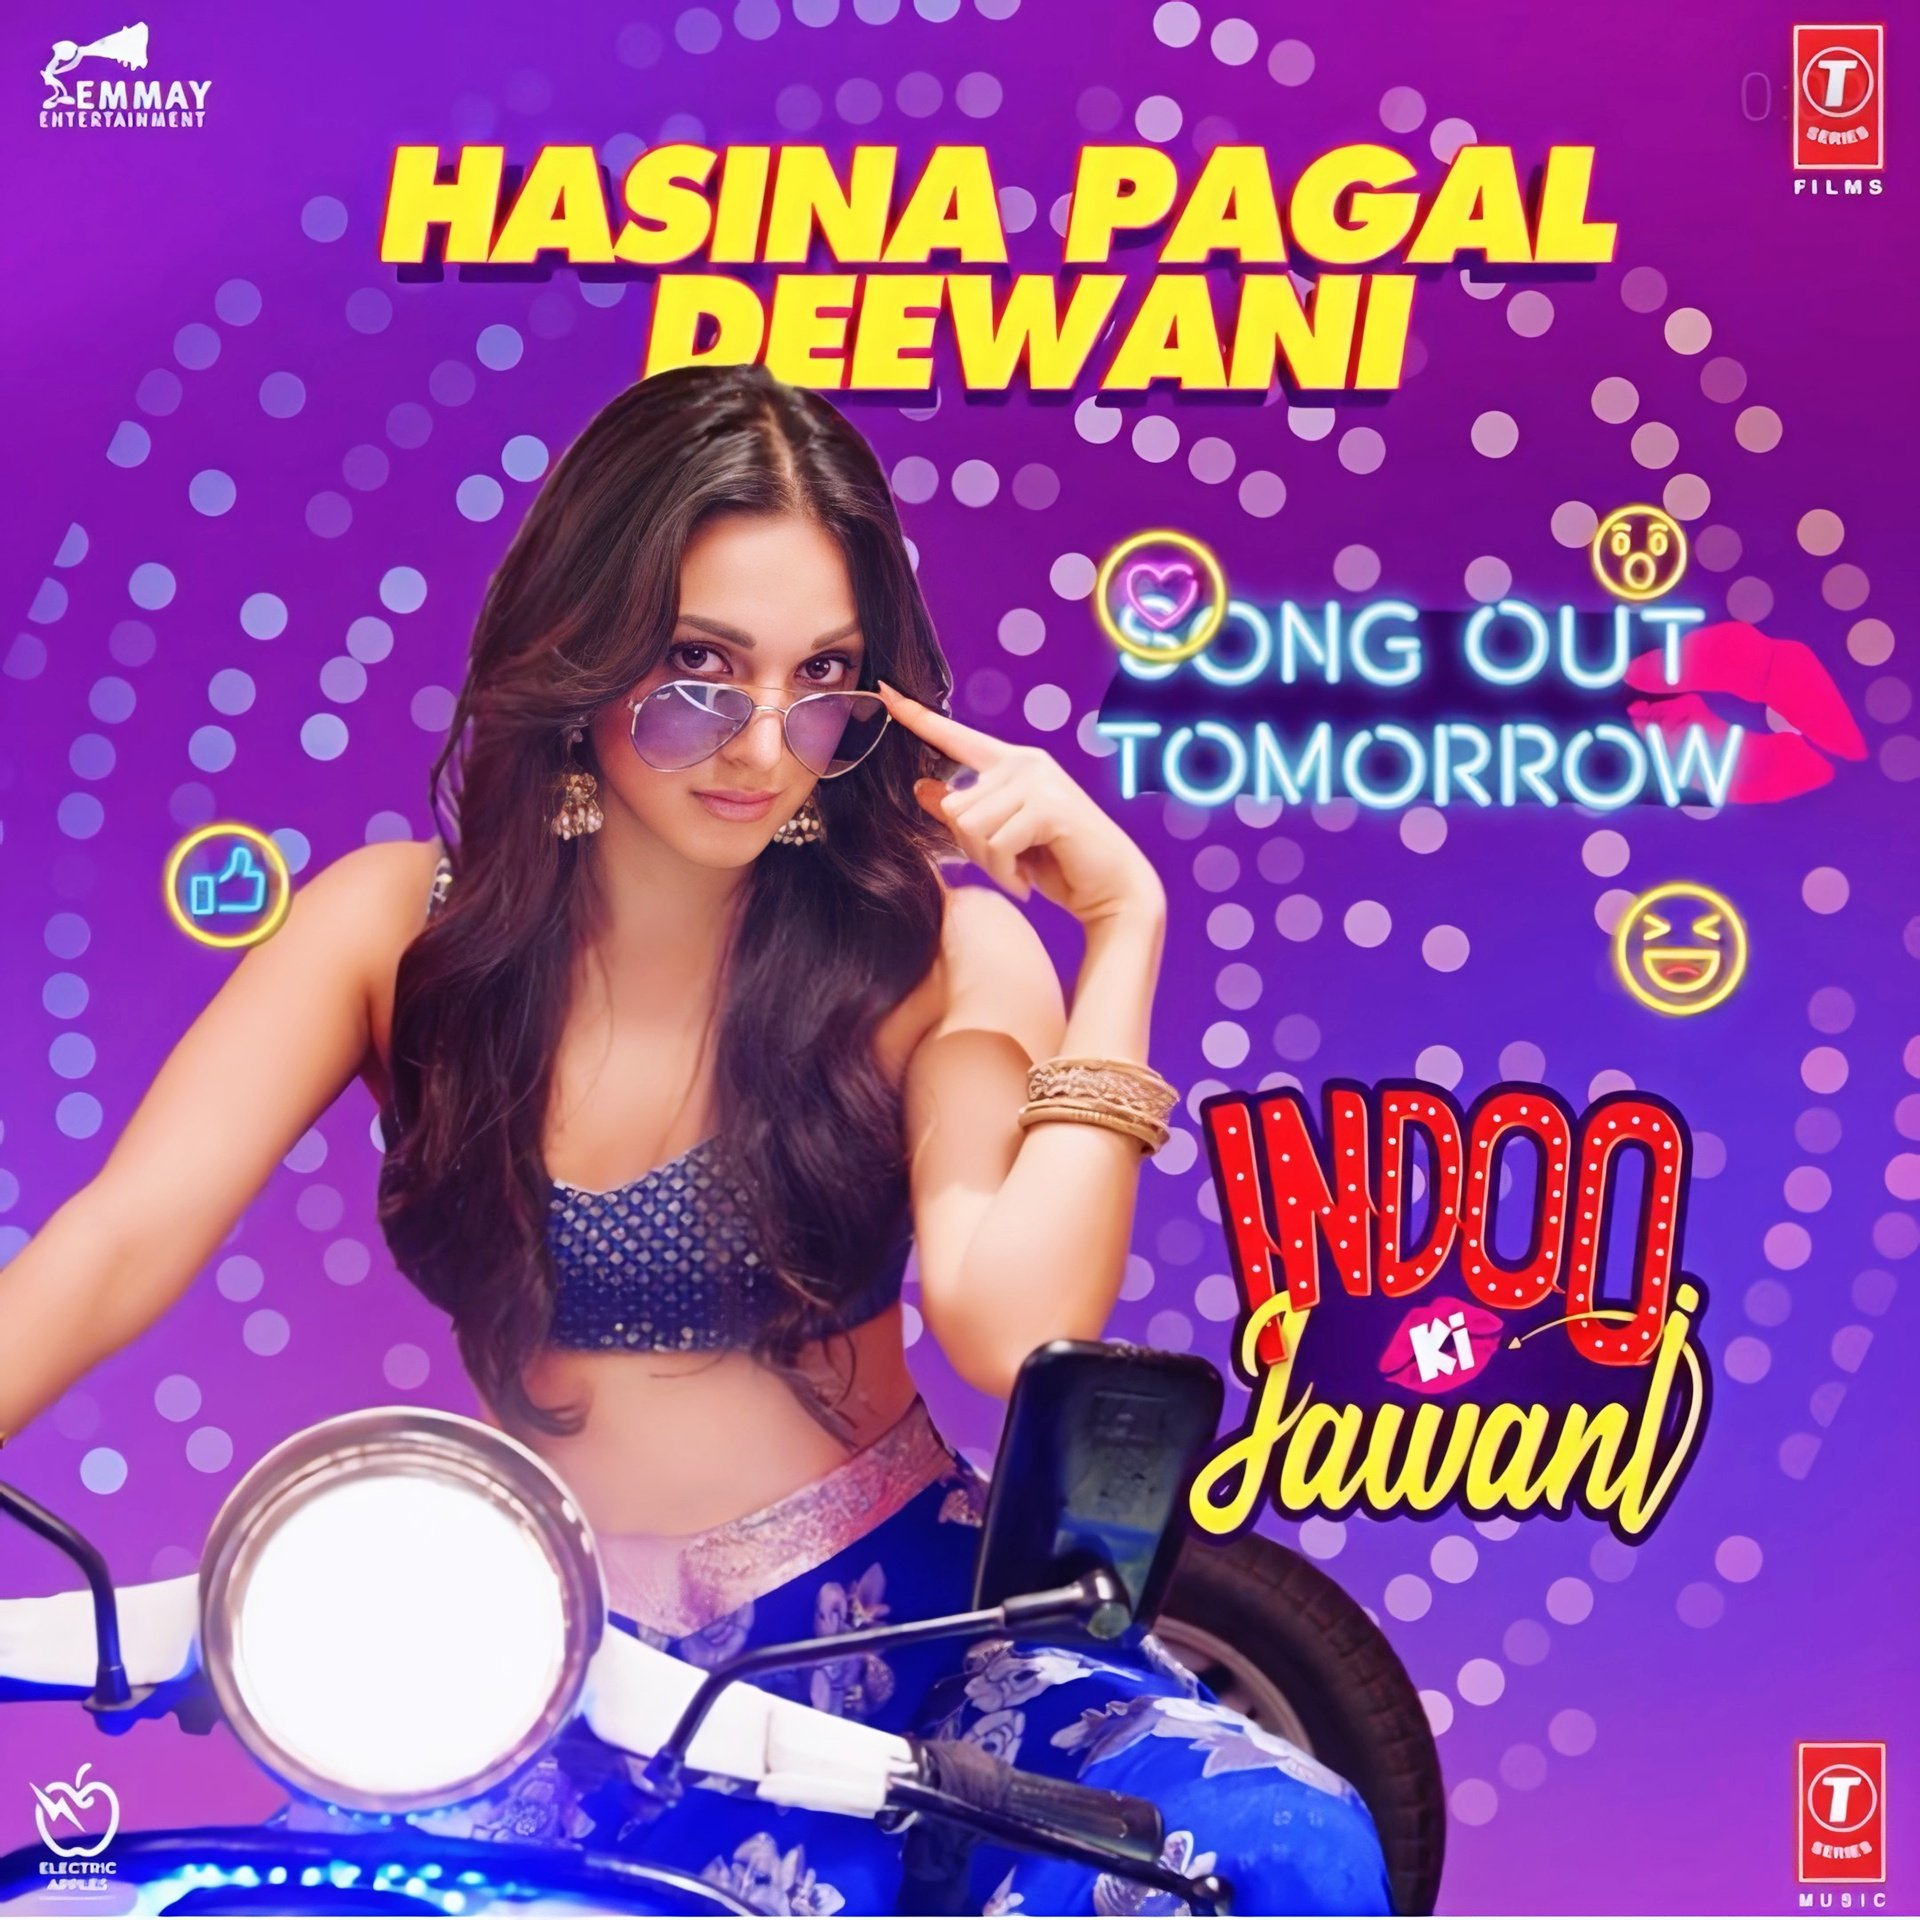 Hasina Pagal Deewani (Indoo Ki Jawani) 2020 Hindi Video Song 1080p HDRip 68MB Download